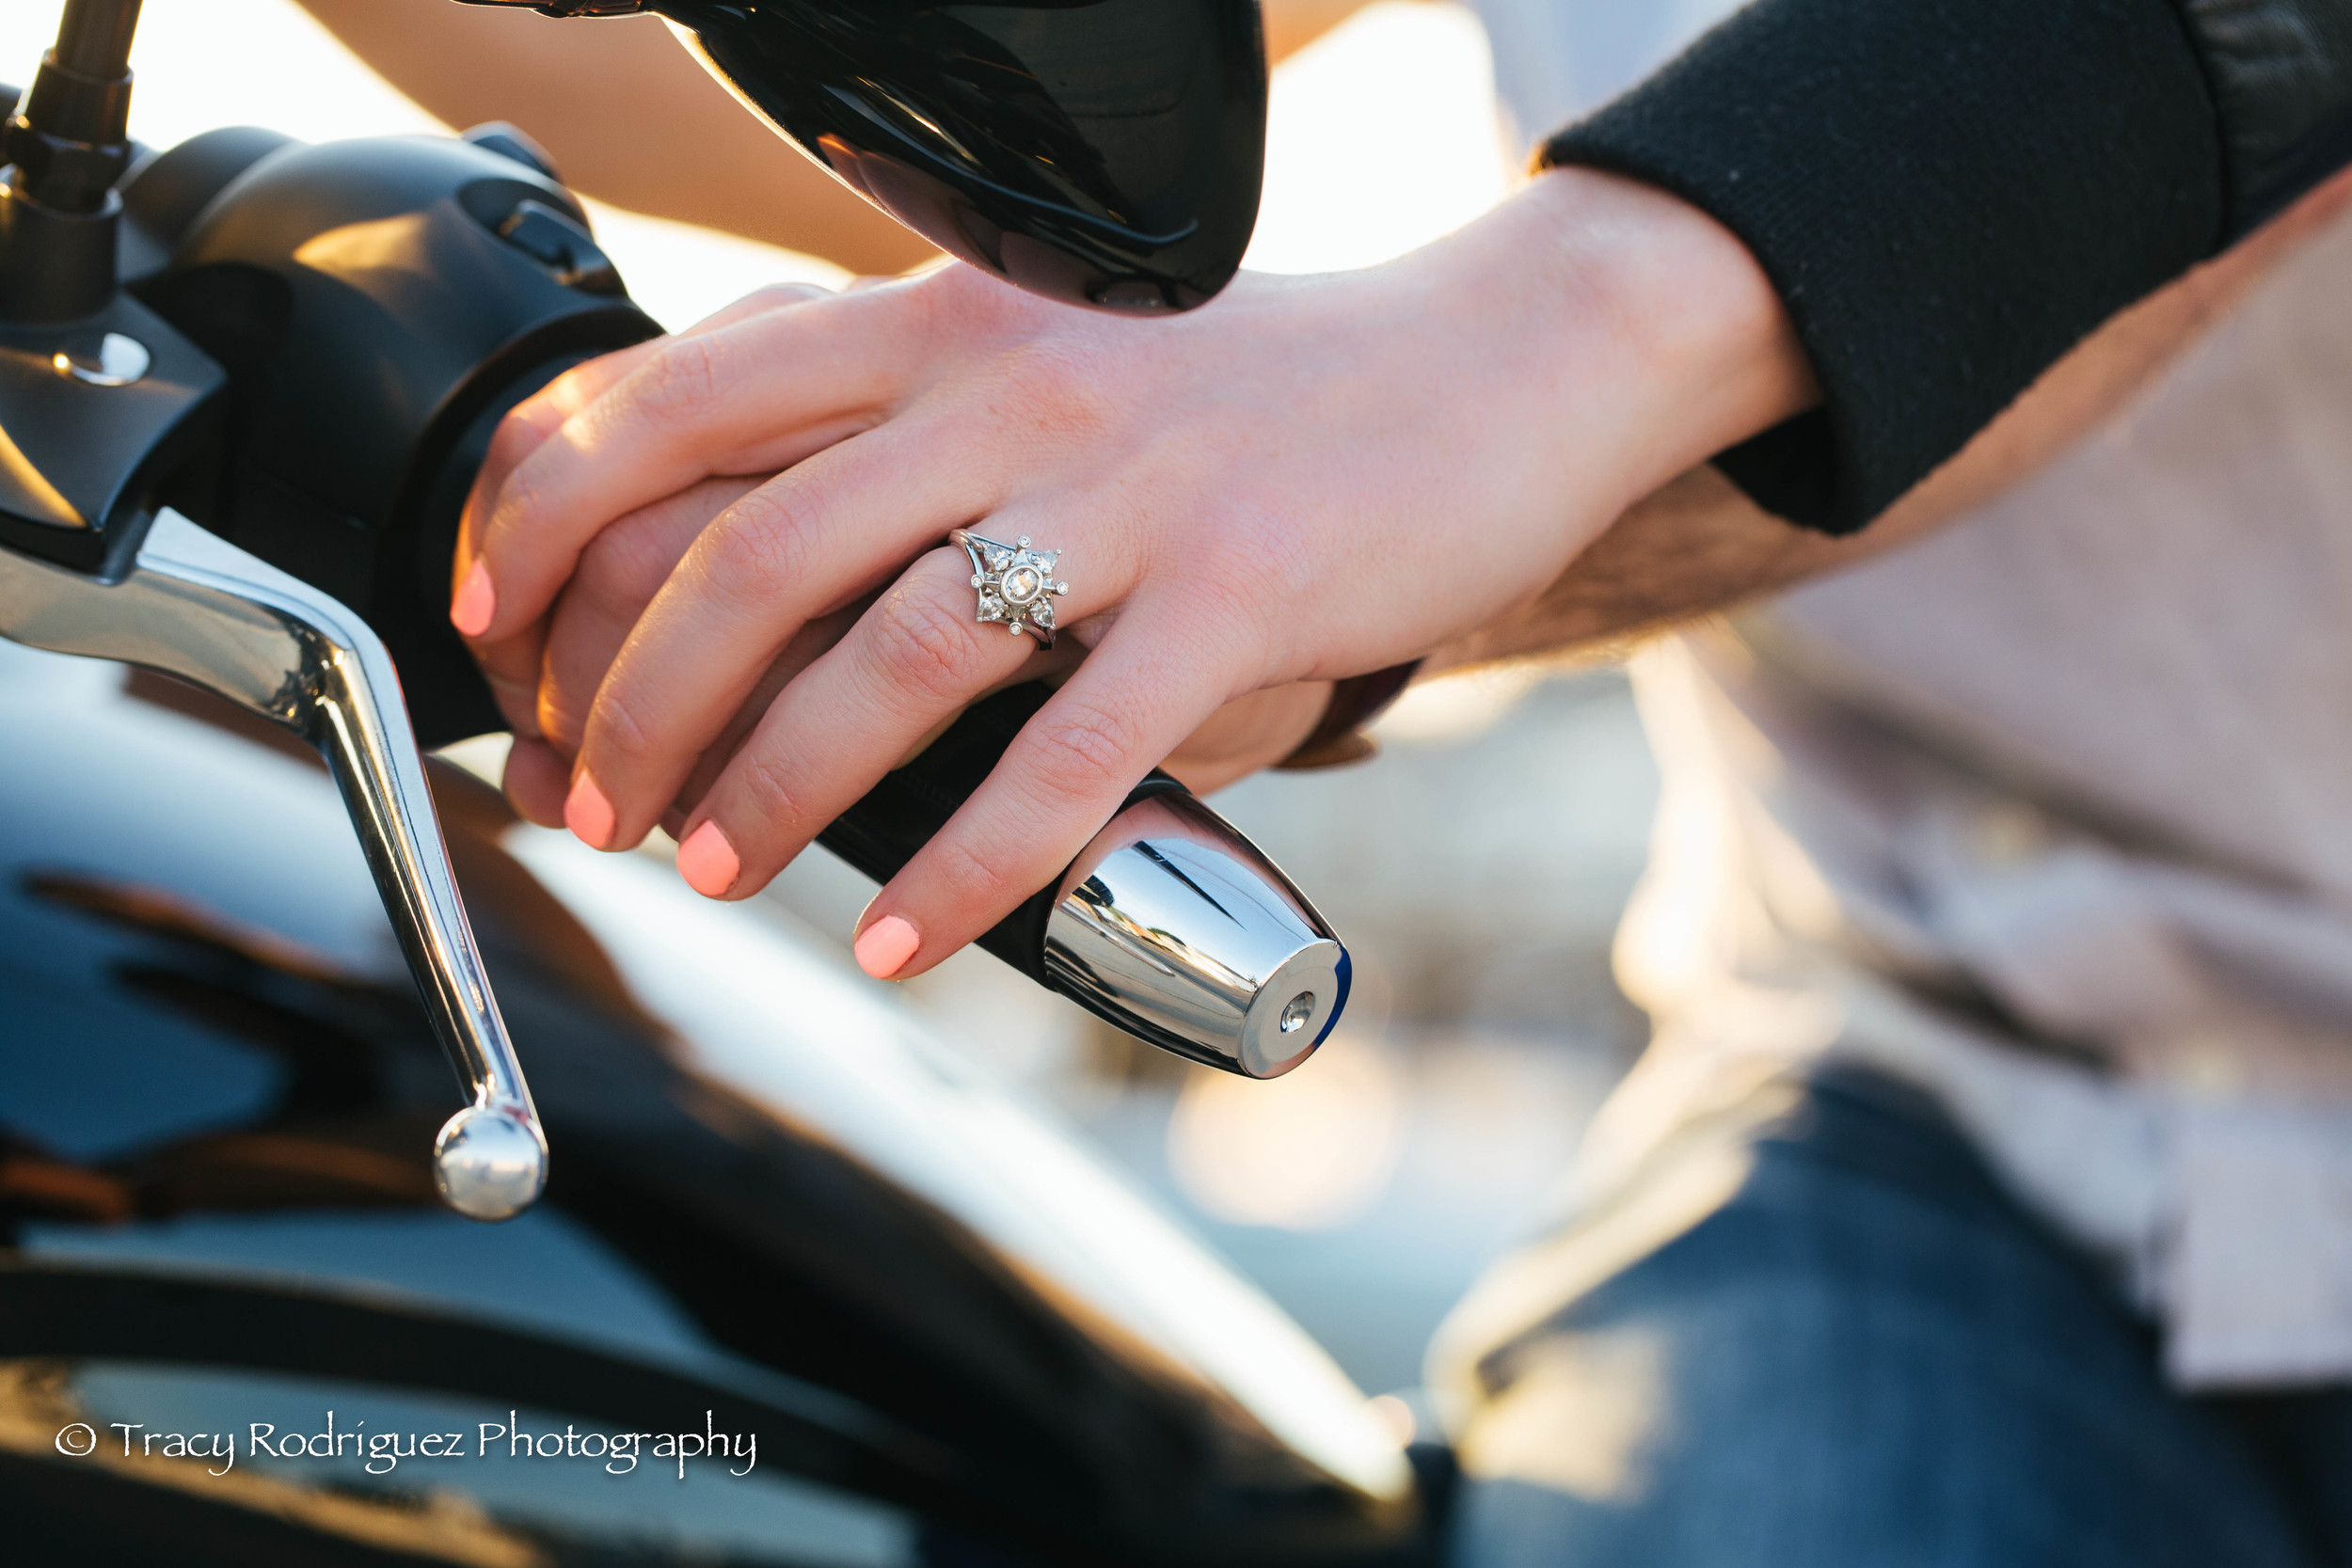 TracyRodriguezPhotography-LowRes-46.jpg